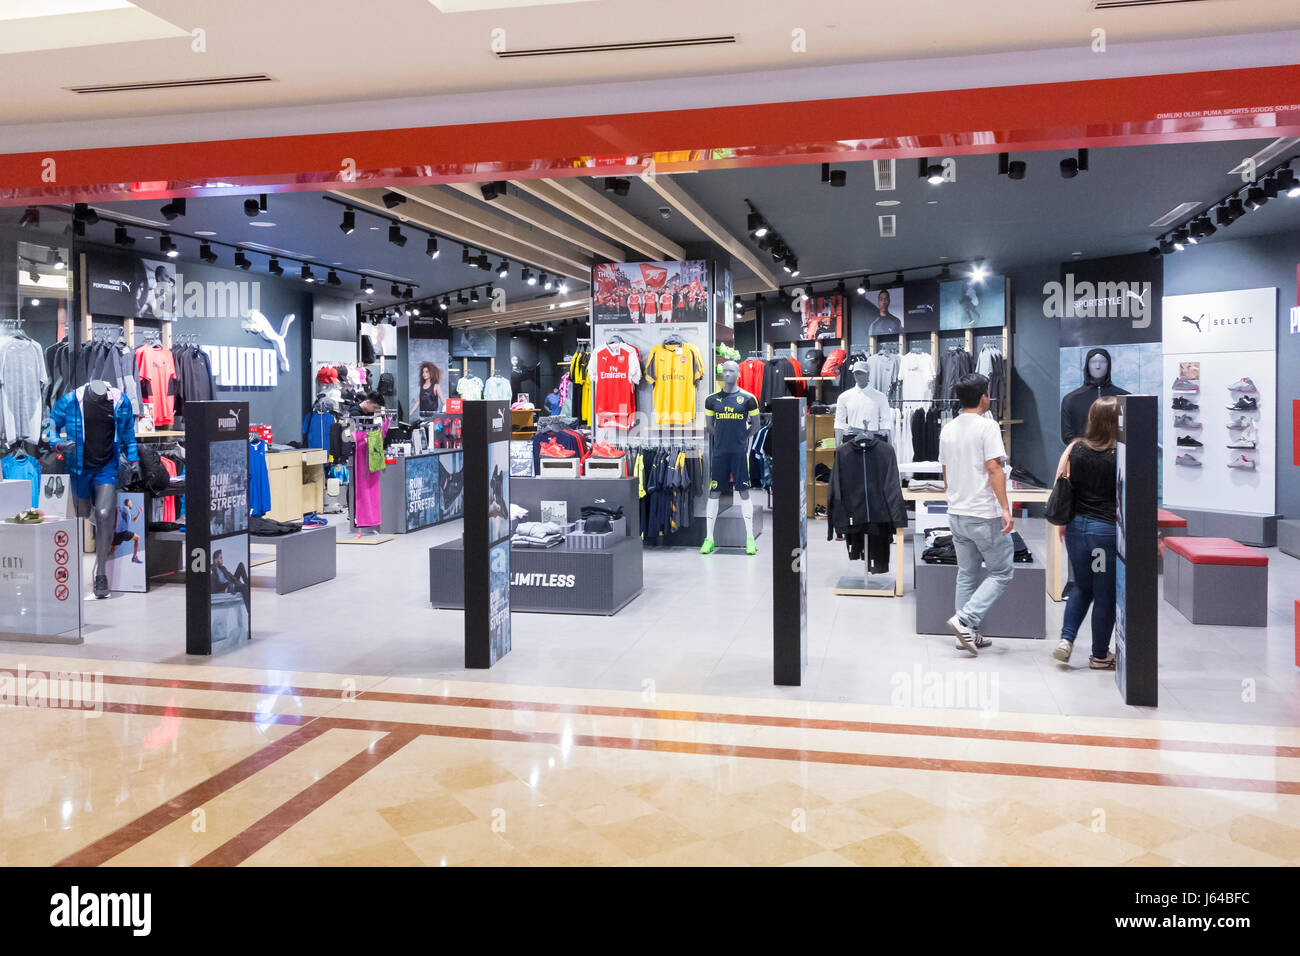 puma scarpe showroom in delhi